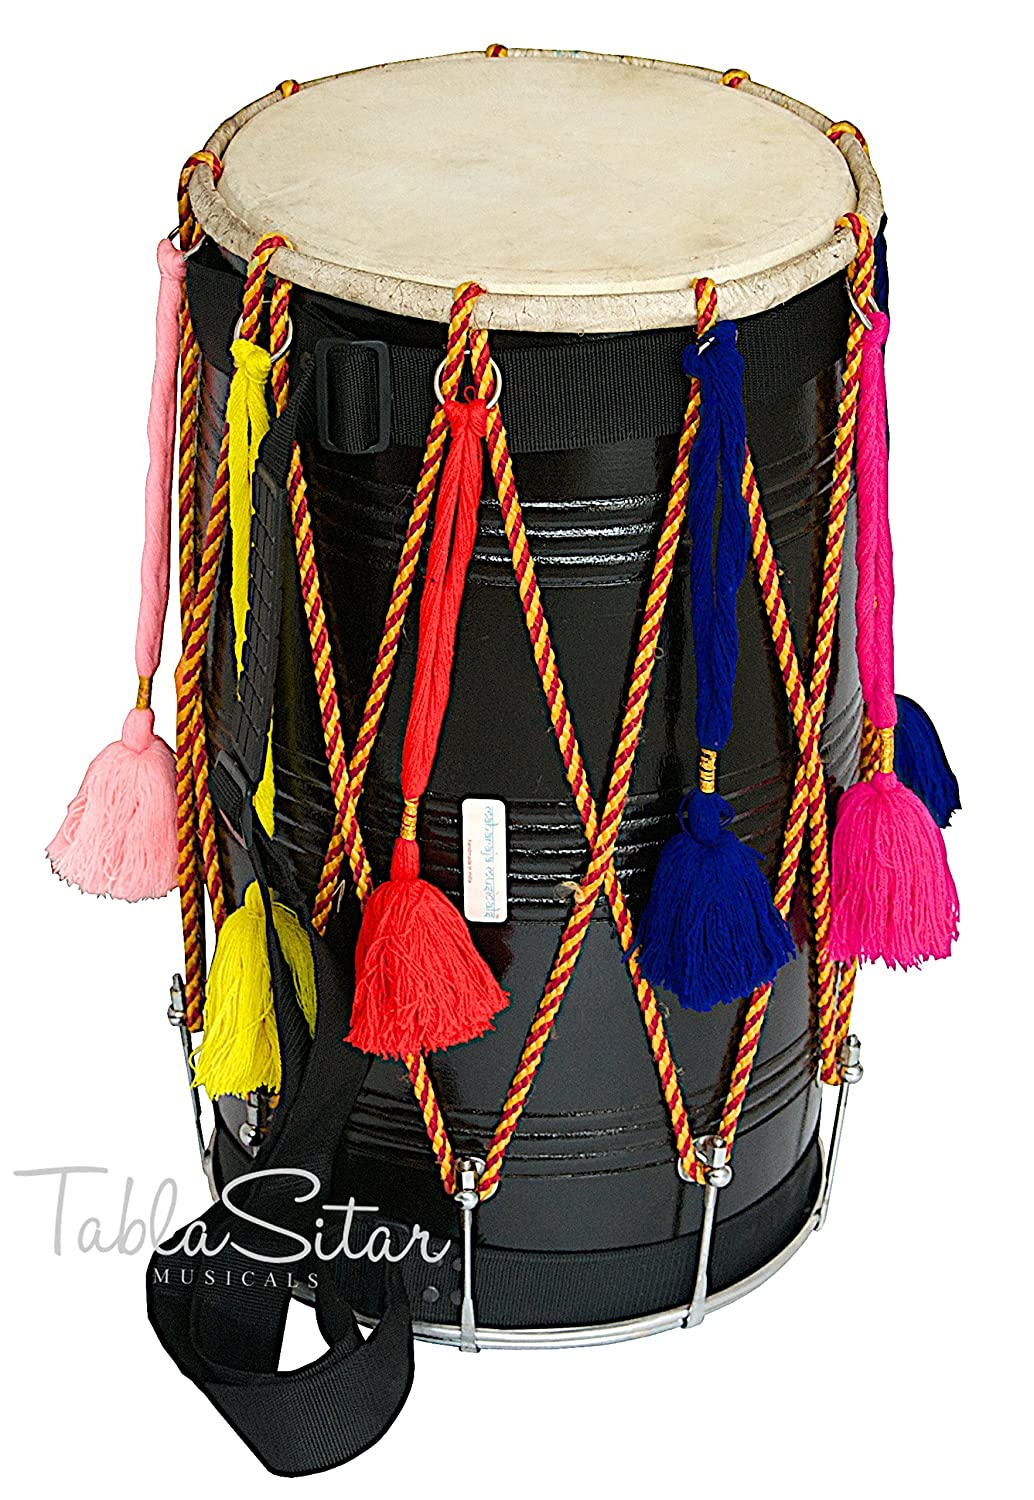 Maharaja Musicals Bhangra Dhol Drum, Mango Wood, Black, Barrel Shaped, Padded Bag, Beaters, Nylon Strap, Punjabi Dhol Drum (PDI-CE) buyRaagini.com